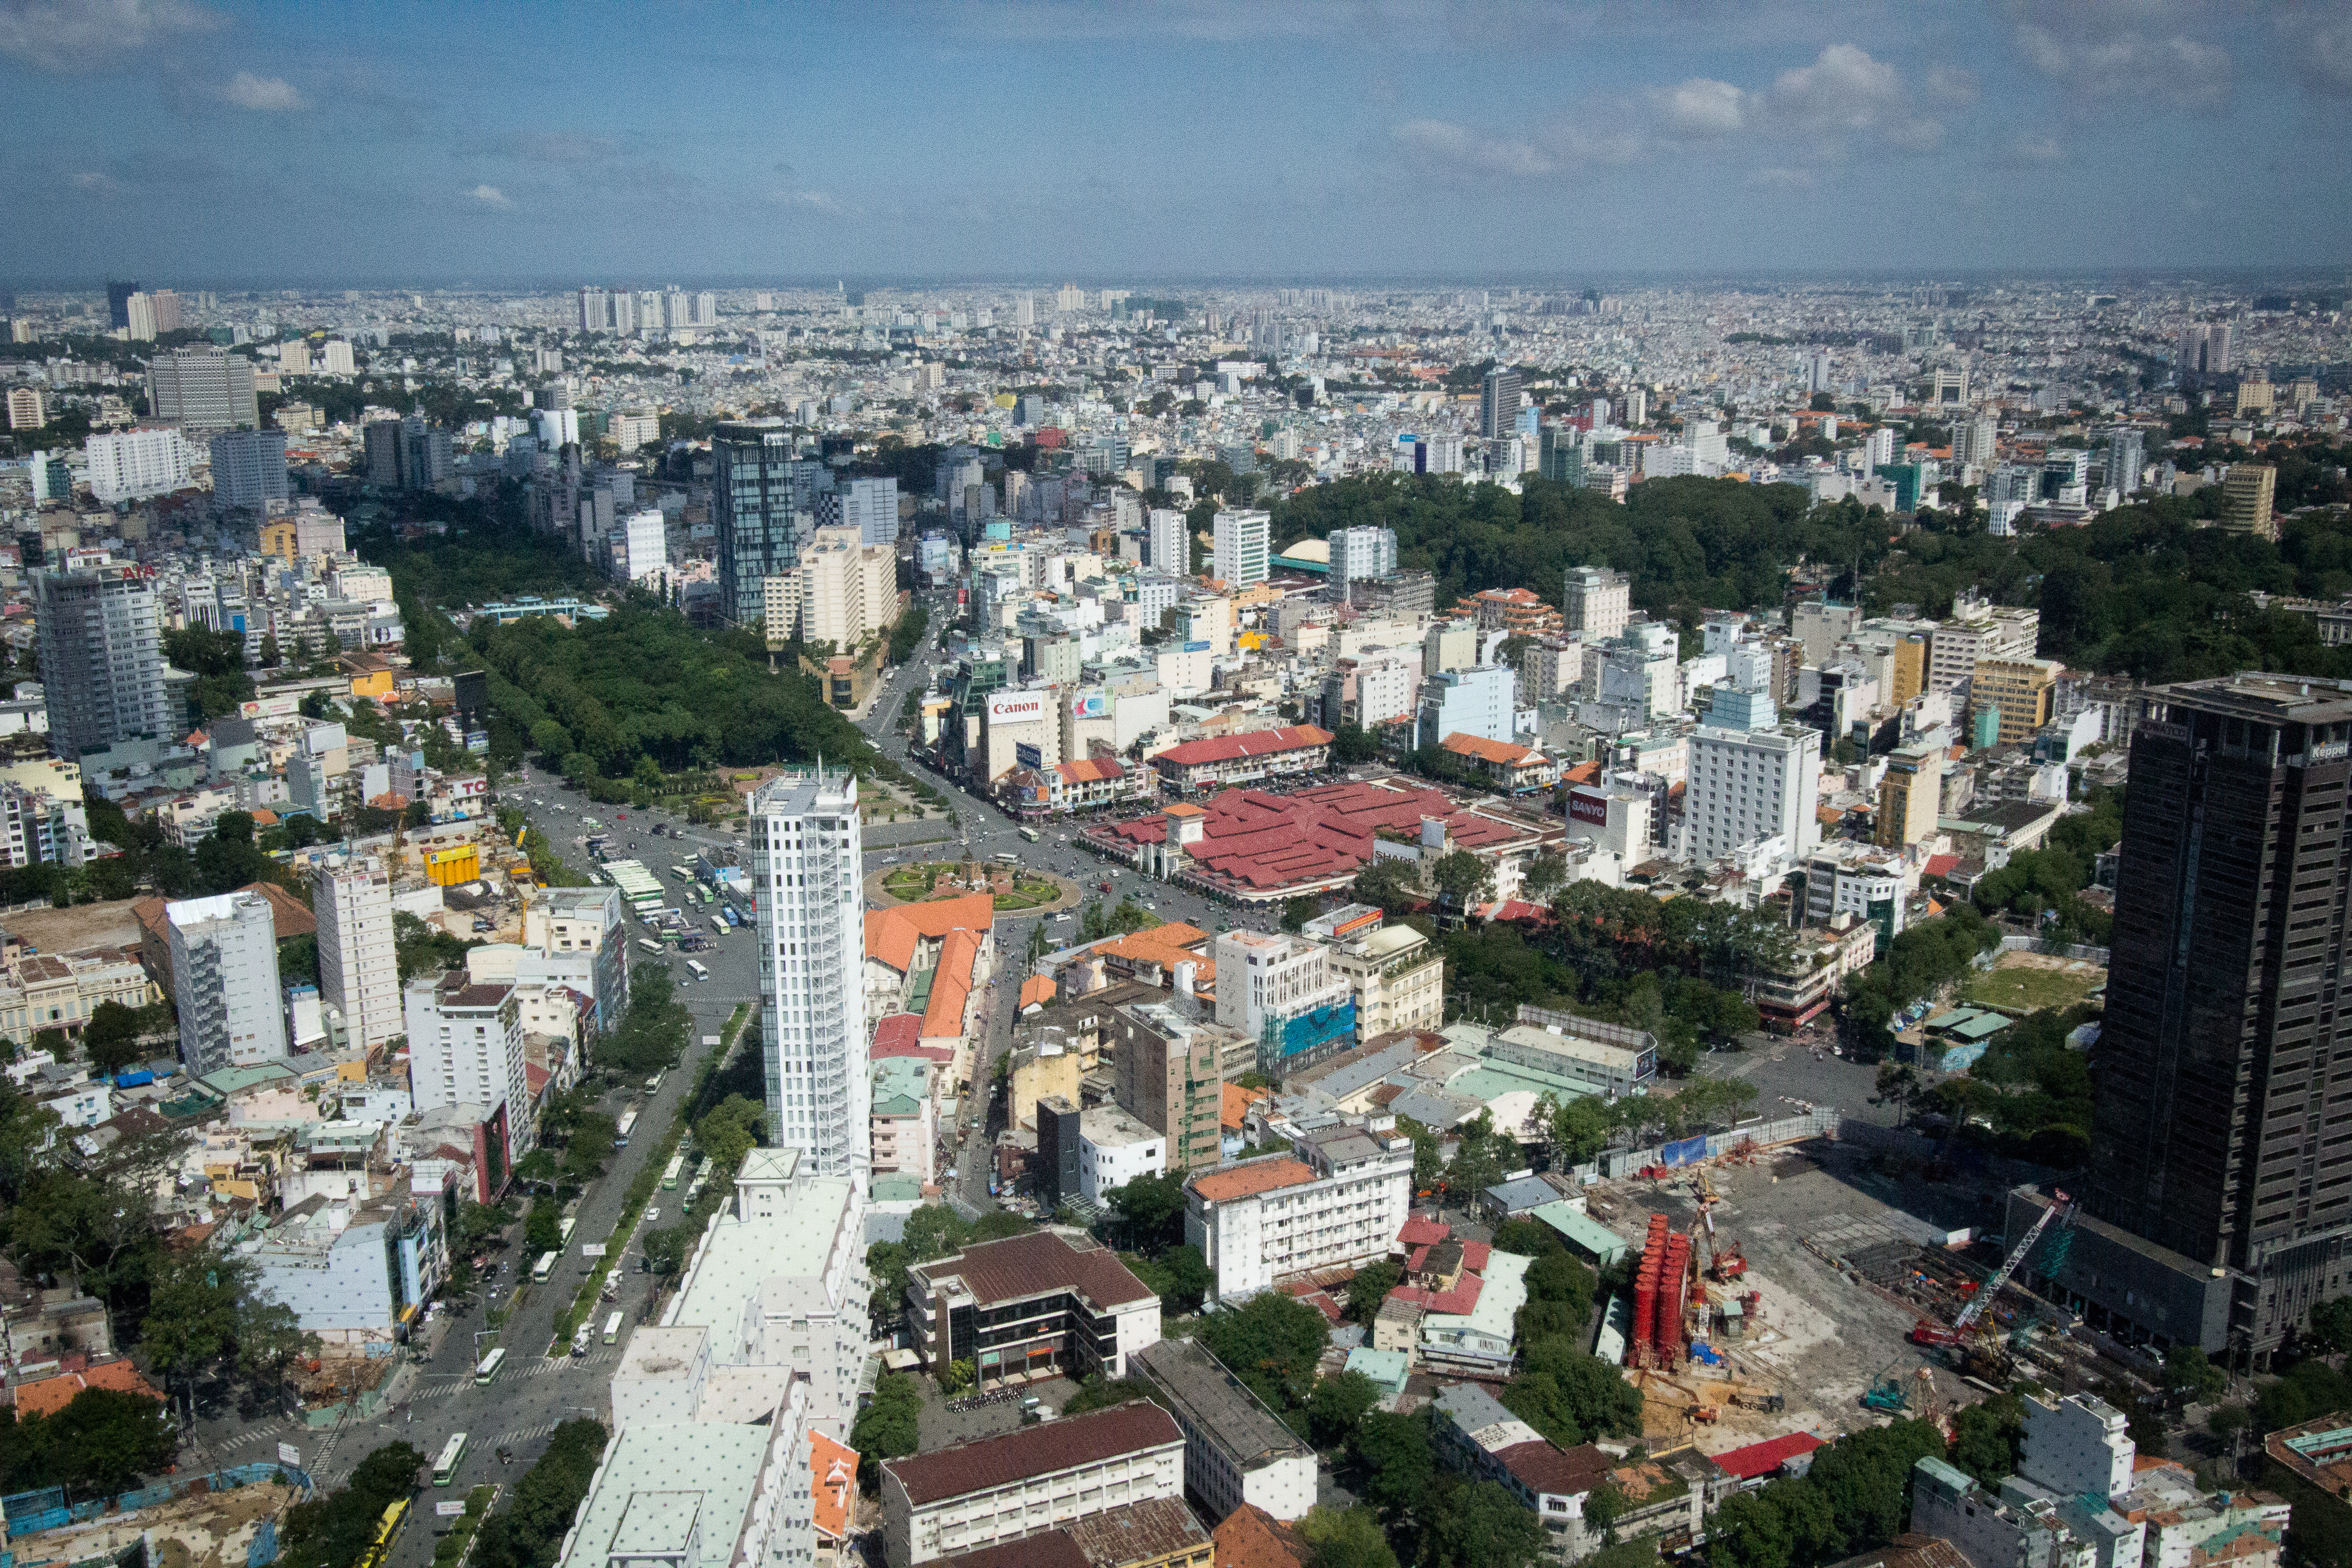 Saigon from the Skydeck View of City